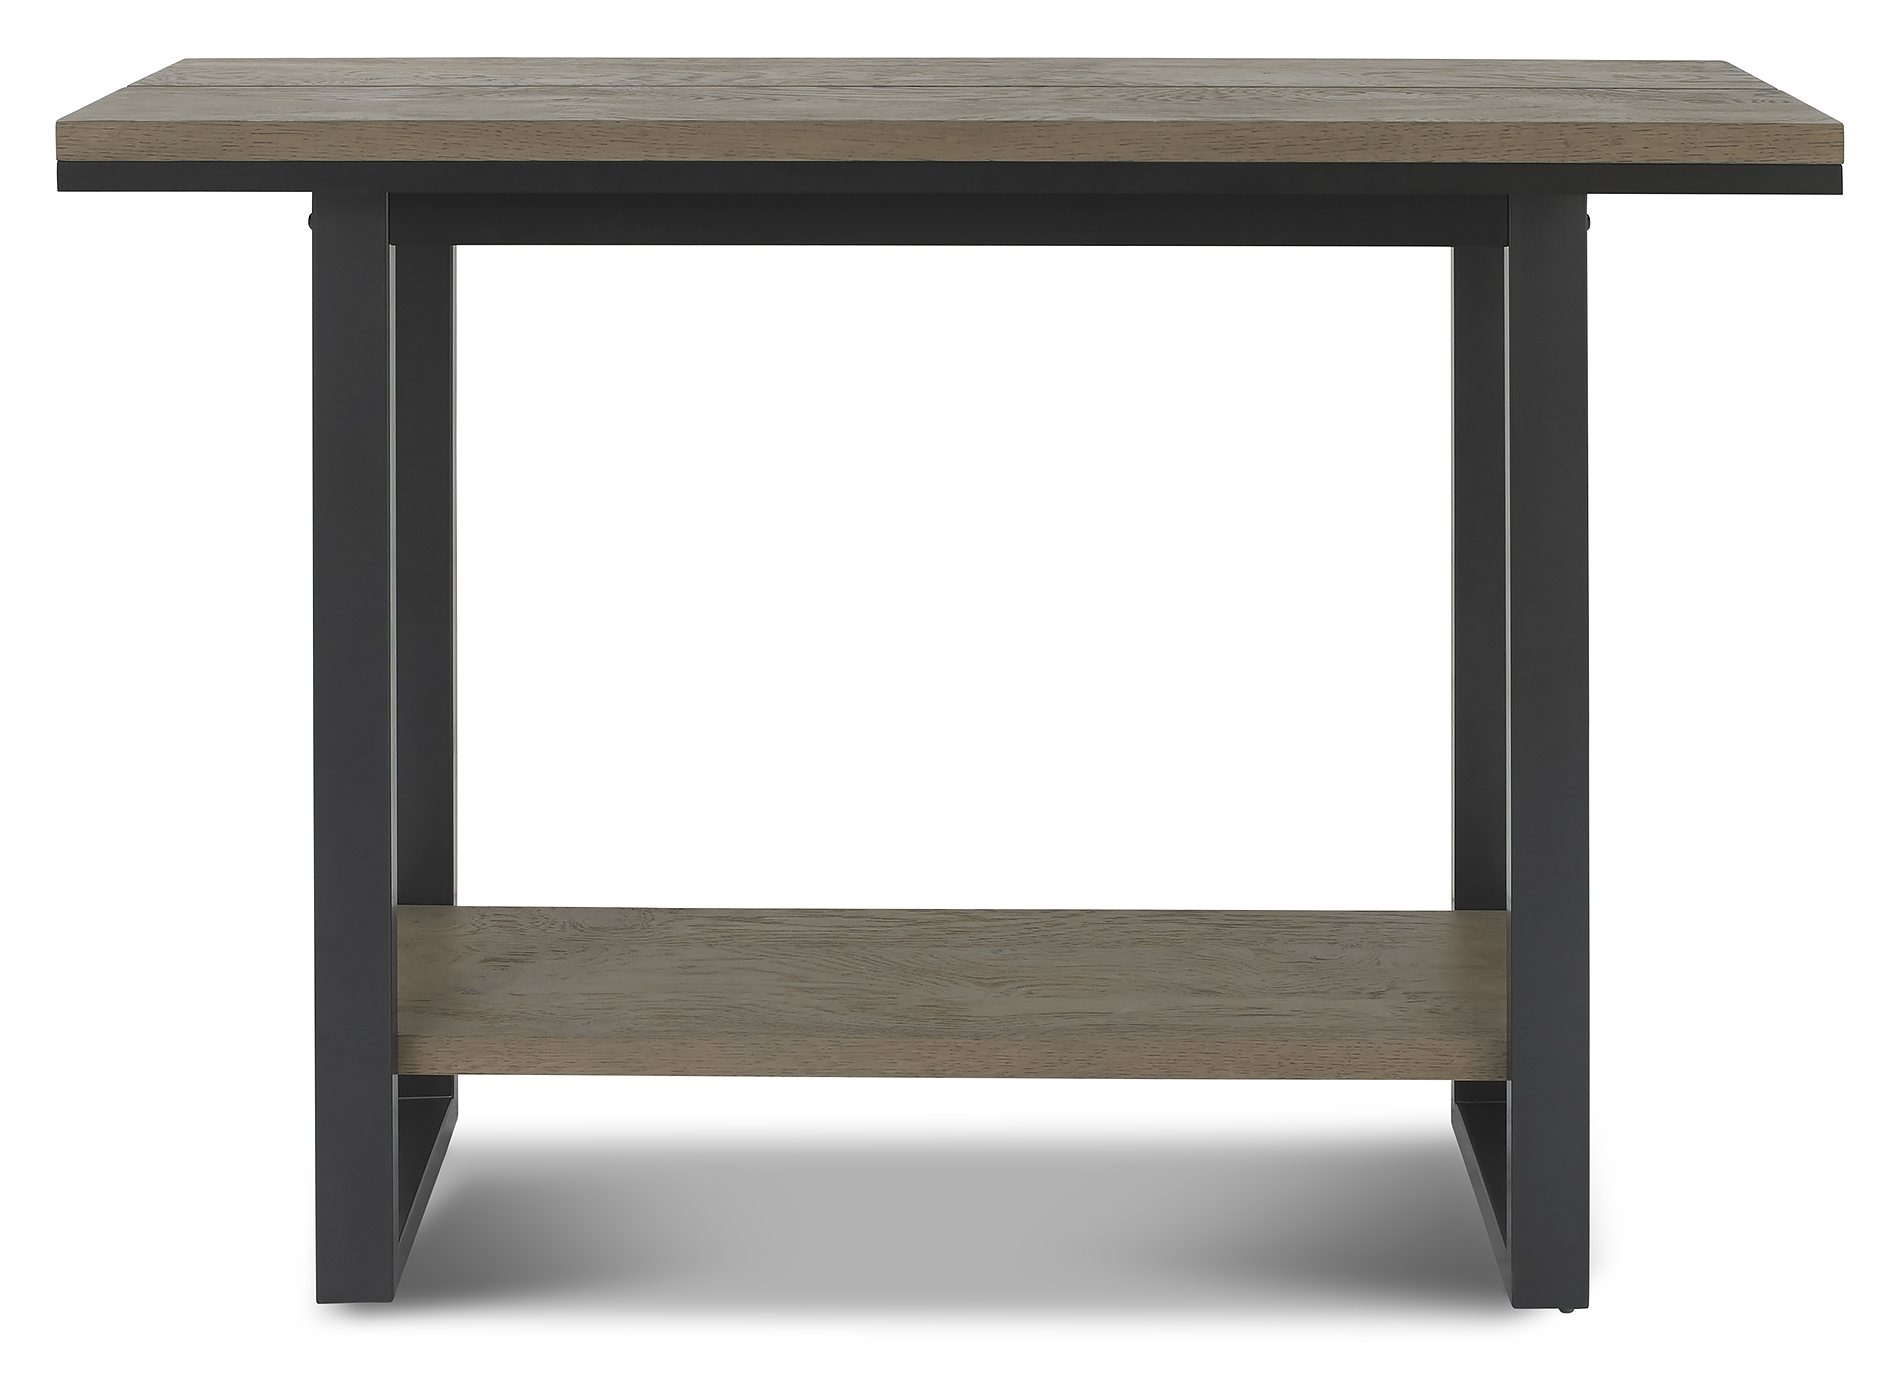 BRINDISI CONSOLE TABLE - FRONT VIEW